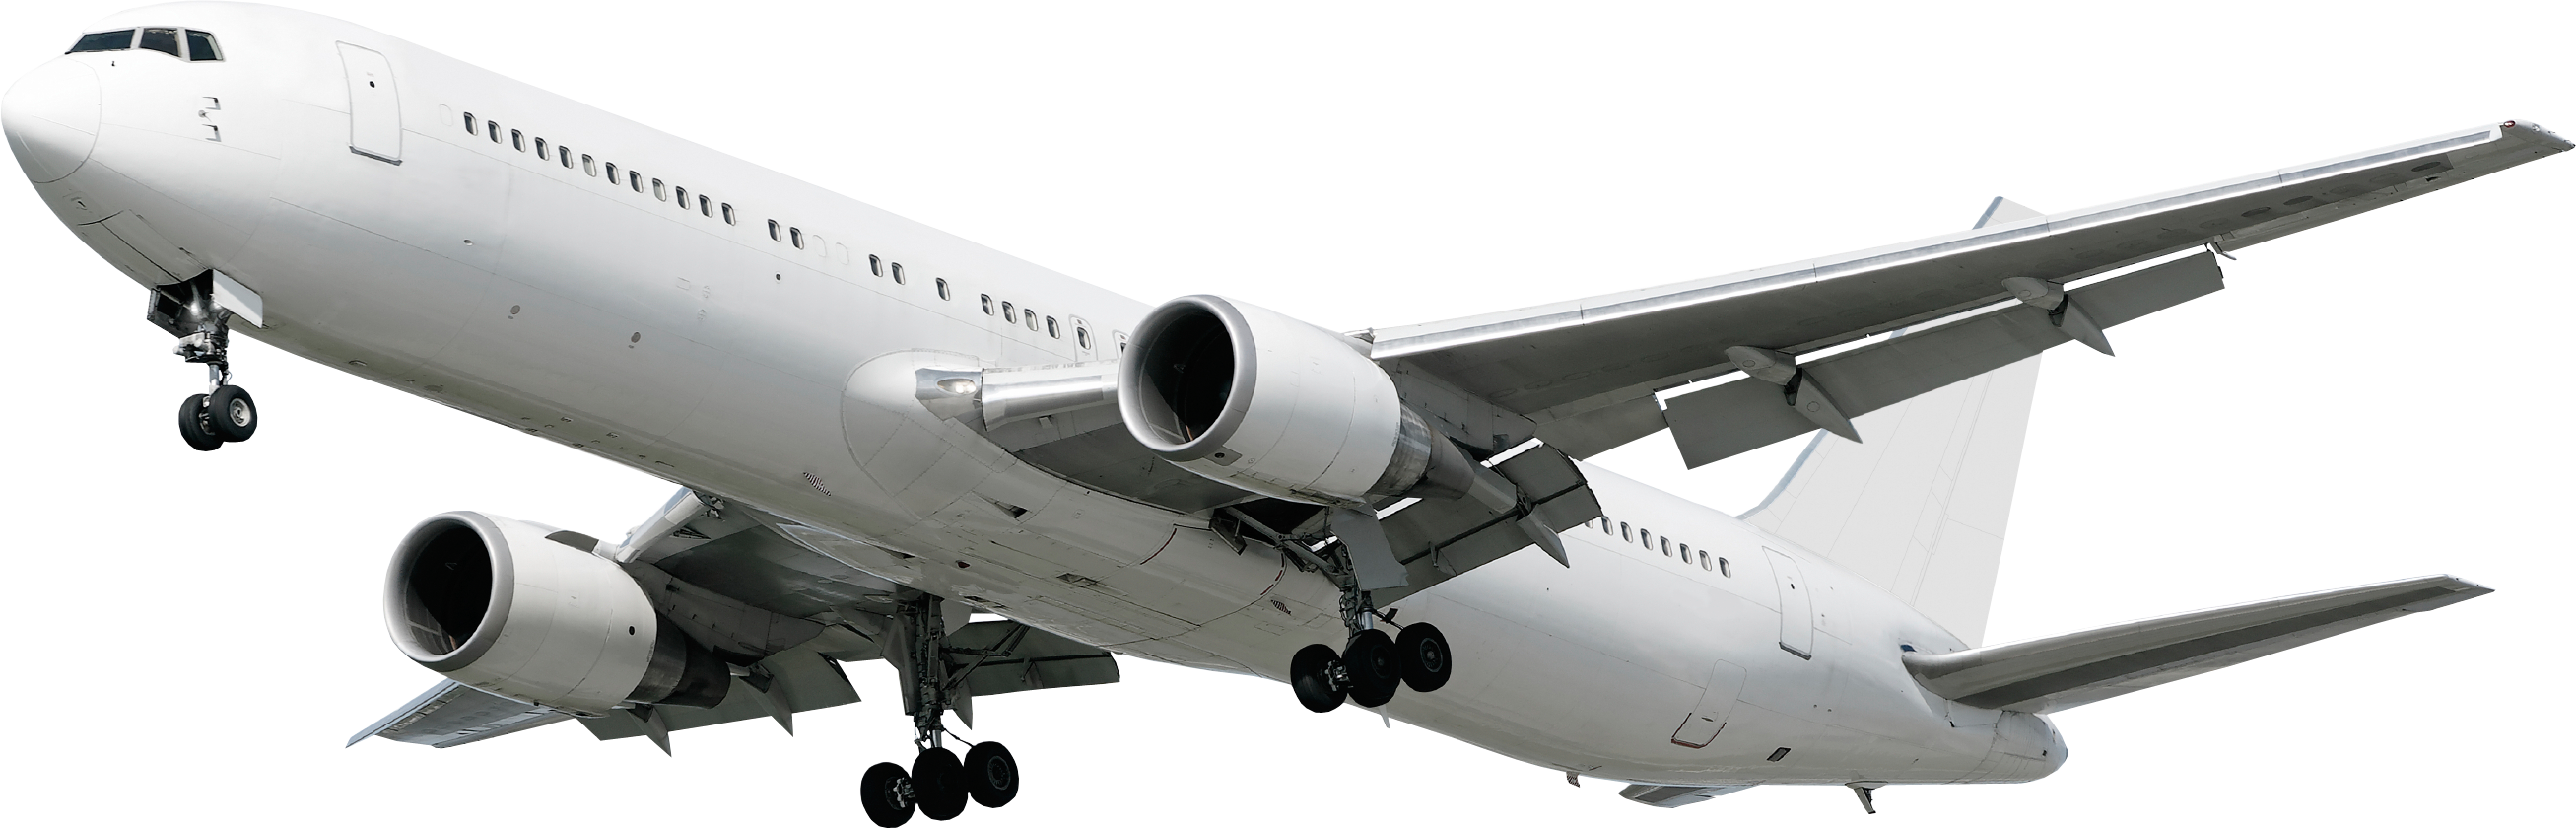 Engine clipart airplane. Plane png transparent images